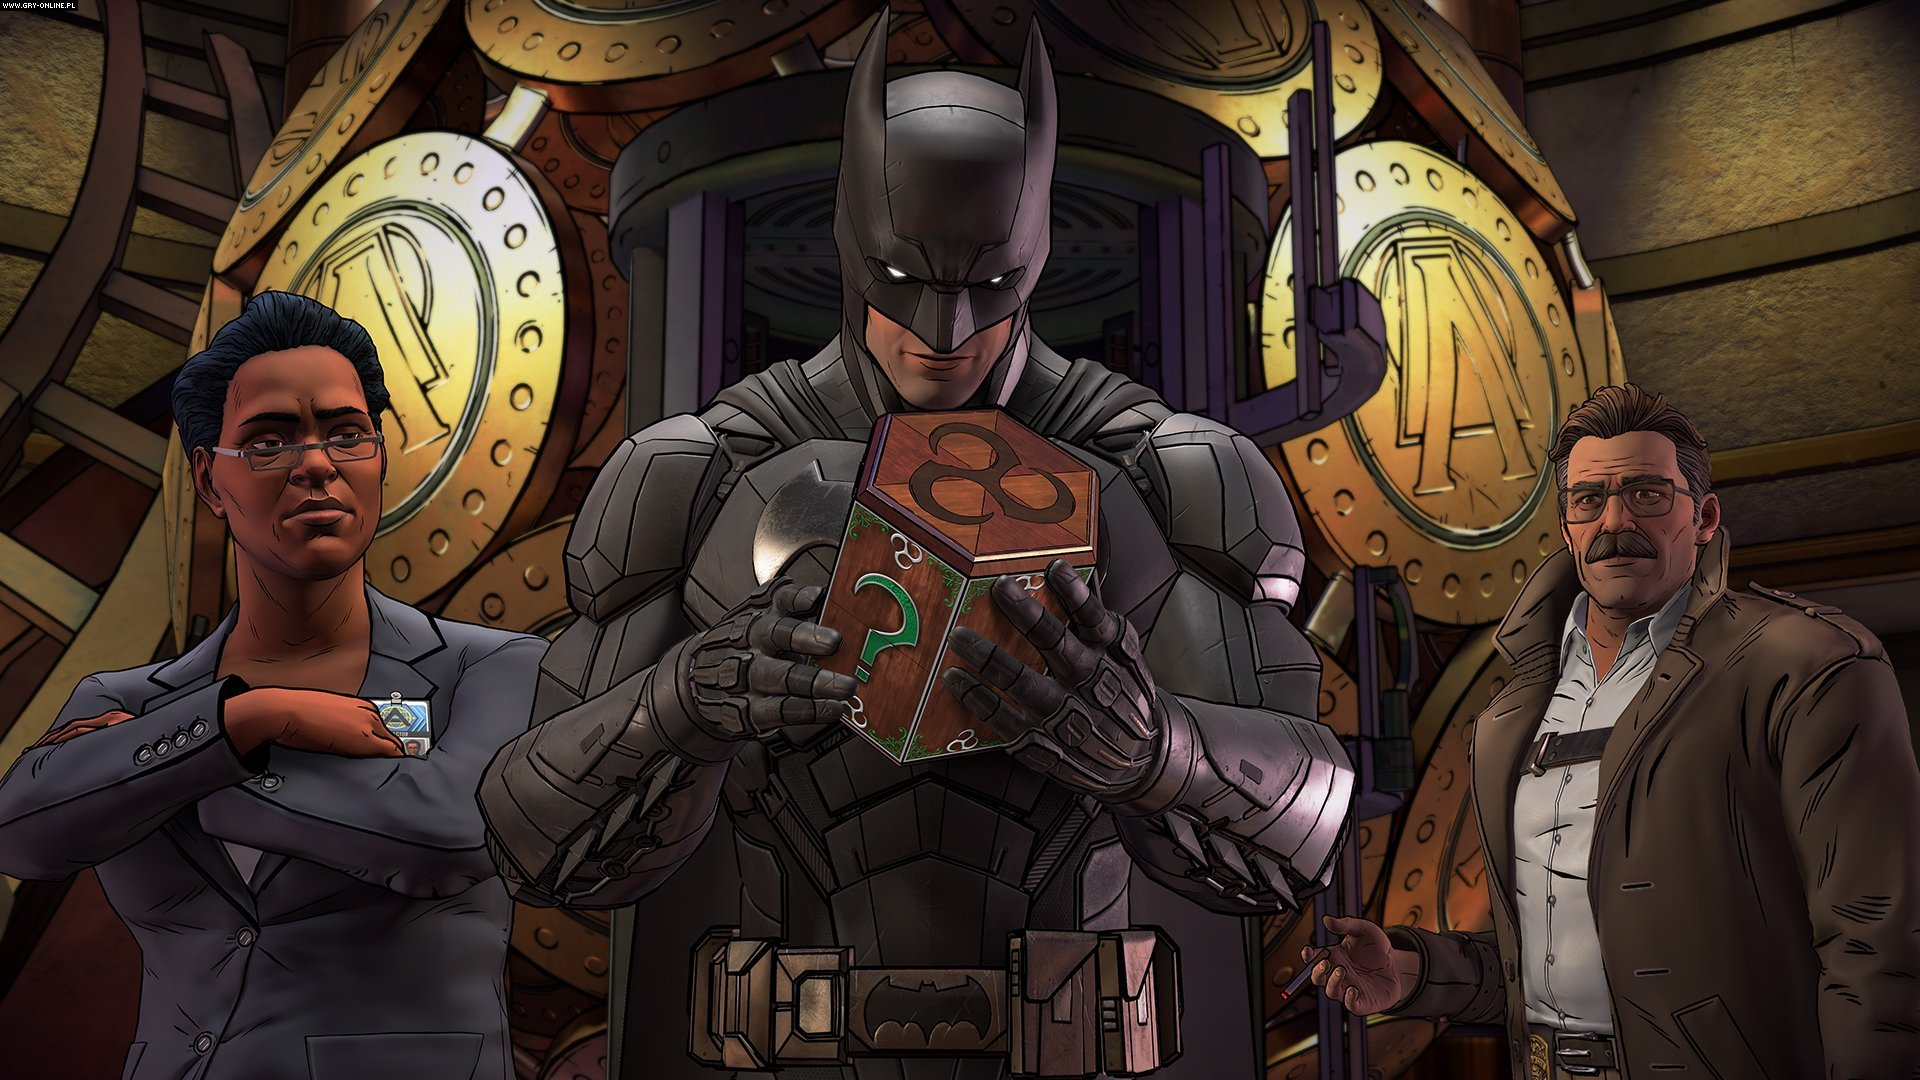 Batman: The Telltale Series - The Enemy Within PC, PS4, XONE, AND, iOS Games Image 12/14, Telltale Games